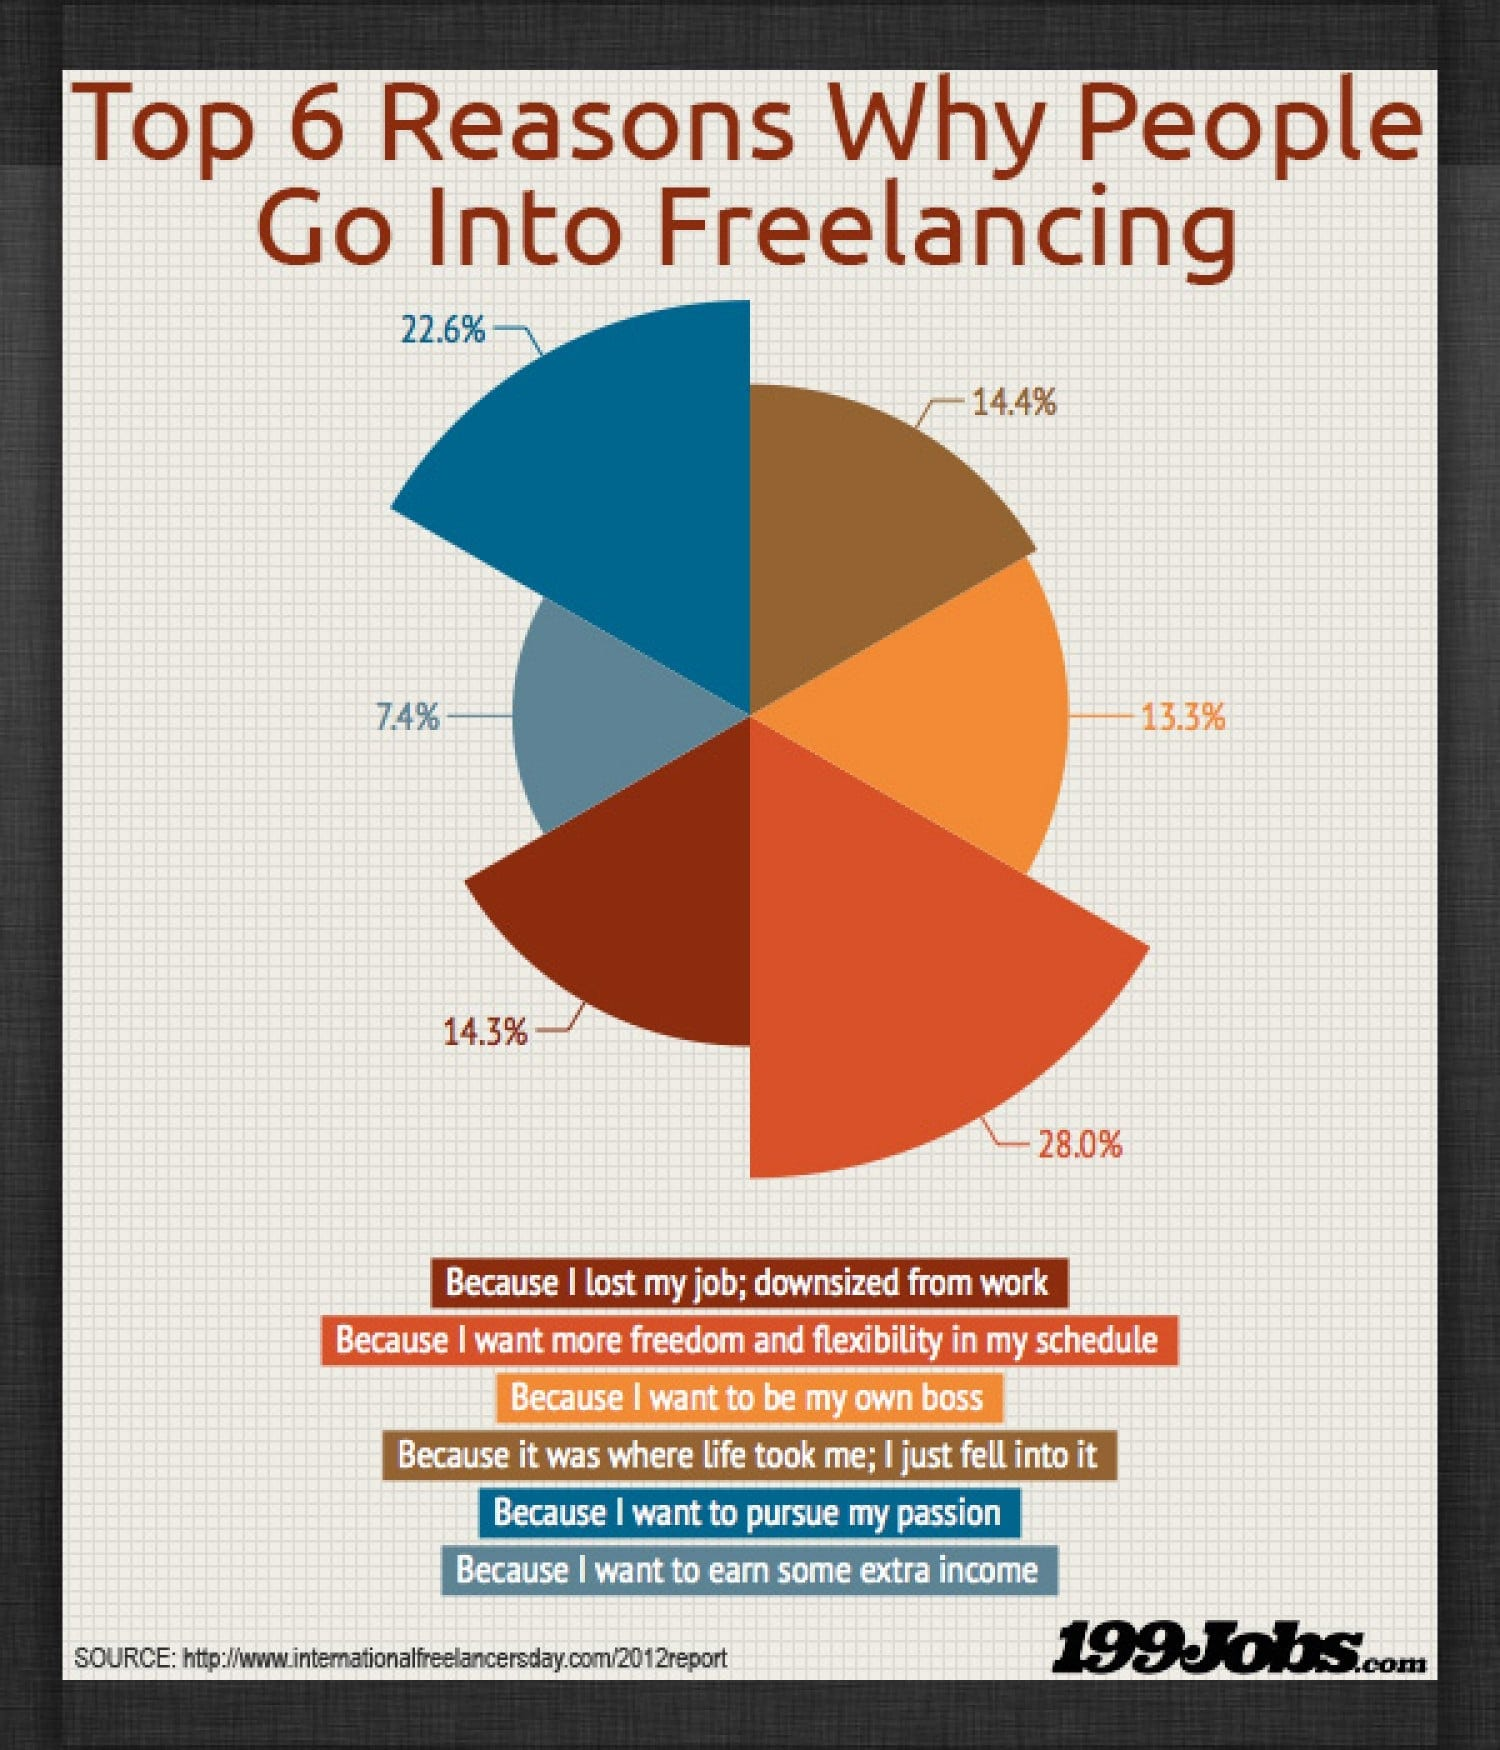 top-6-reasons-why-people--go-into-freelancing_5232f49b7974a_w1500